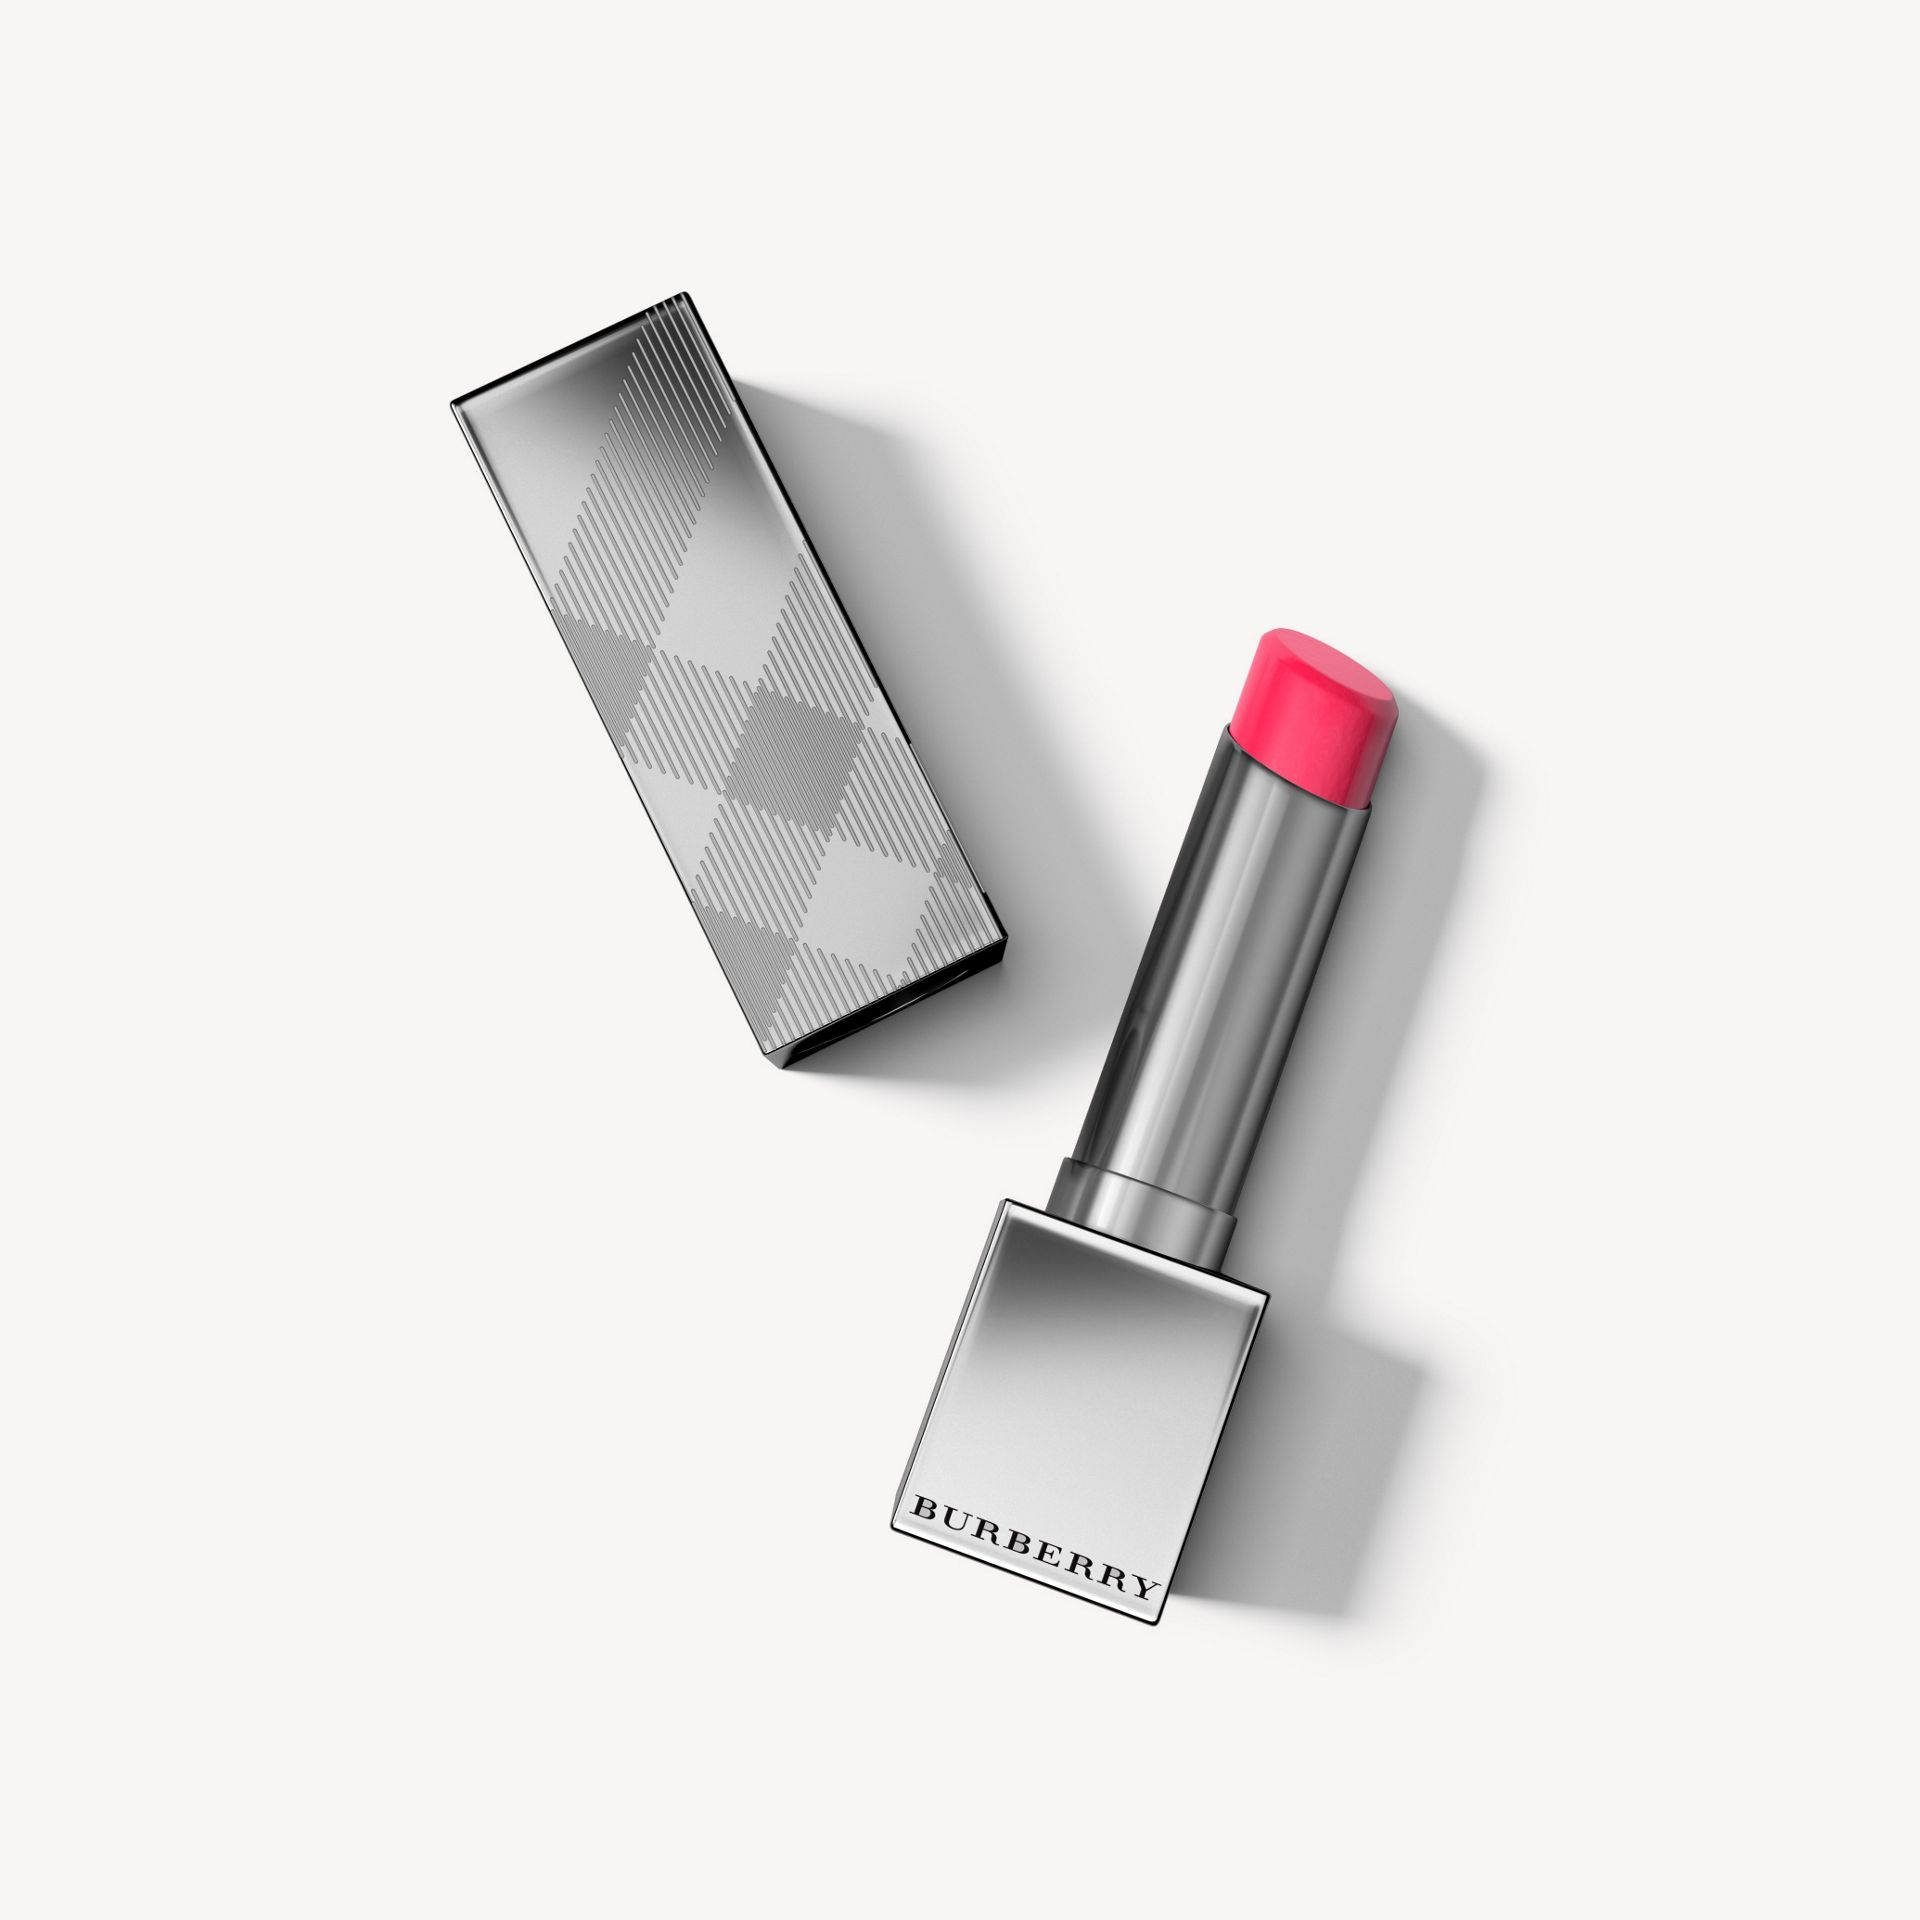 Burberry Kisses Sheer - Bright Pink No.233 - Donna | Burberry - immagine della galleria 1